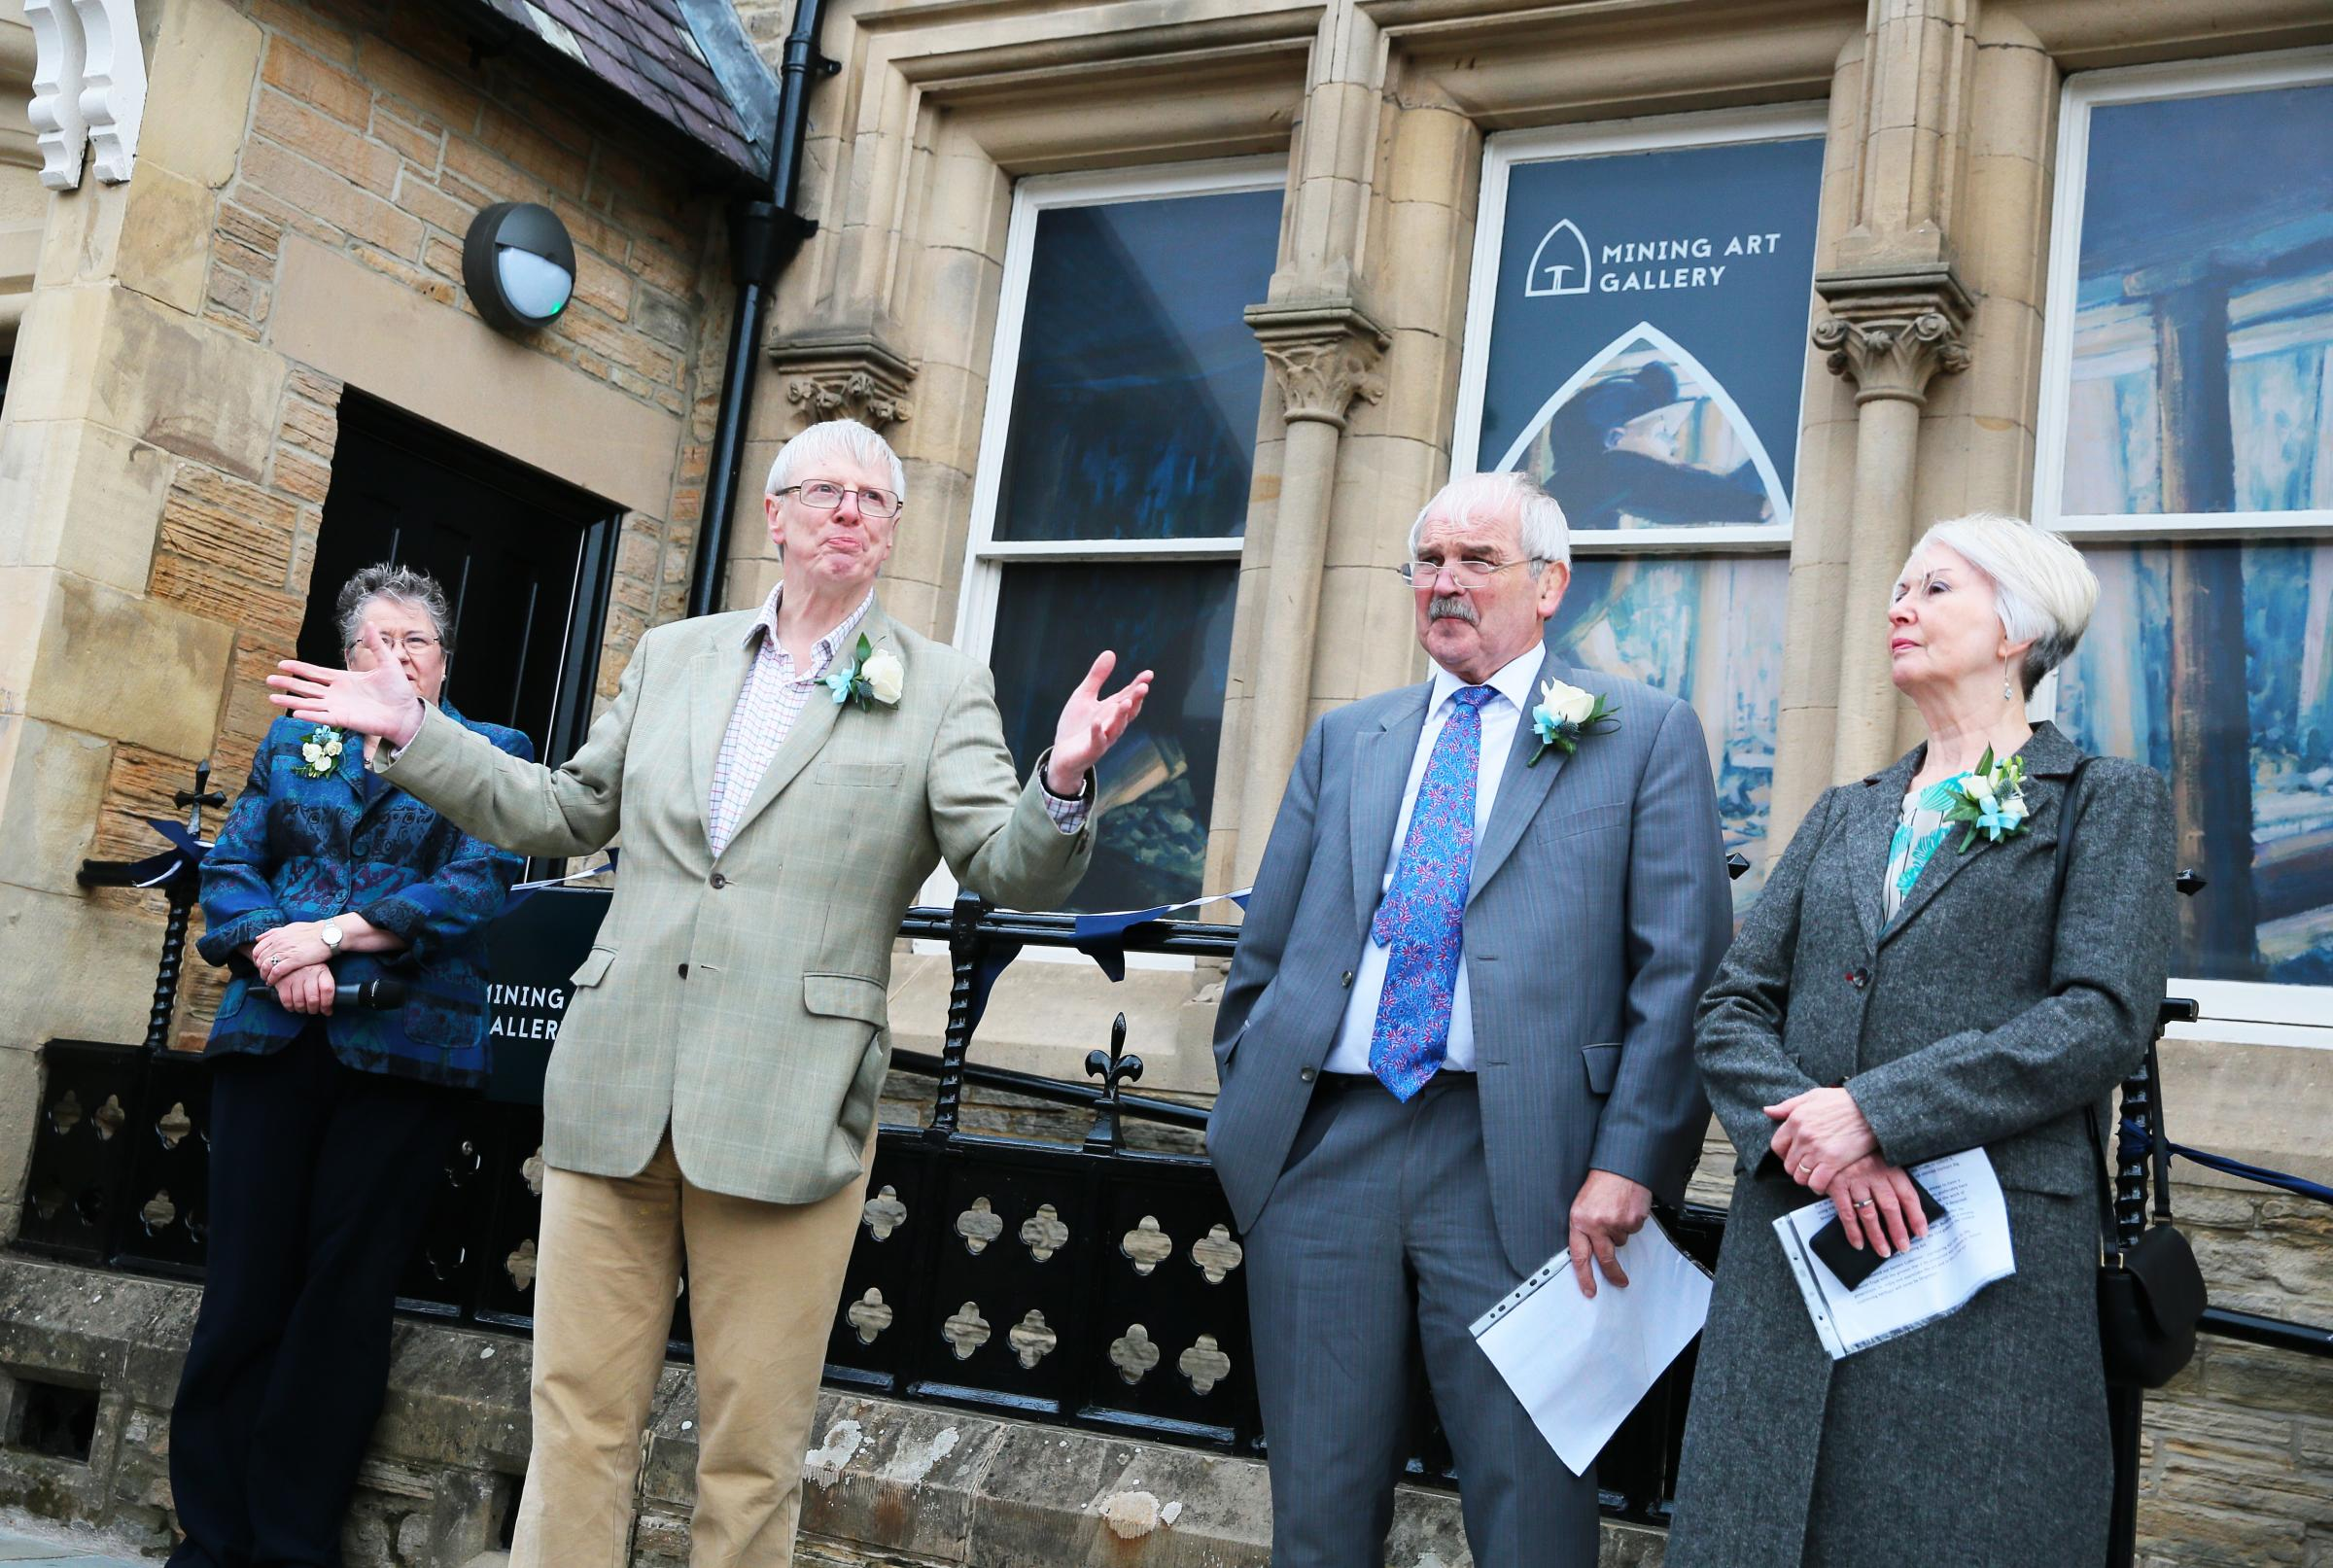 OPEN: Jonathan Ruffer makes a speech ahead of the ribbon cutting at Bishop Auckland's new Mining Art Gallery Picture: SARAH CALDECOTT